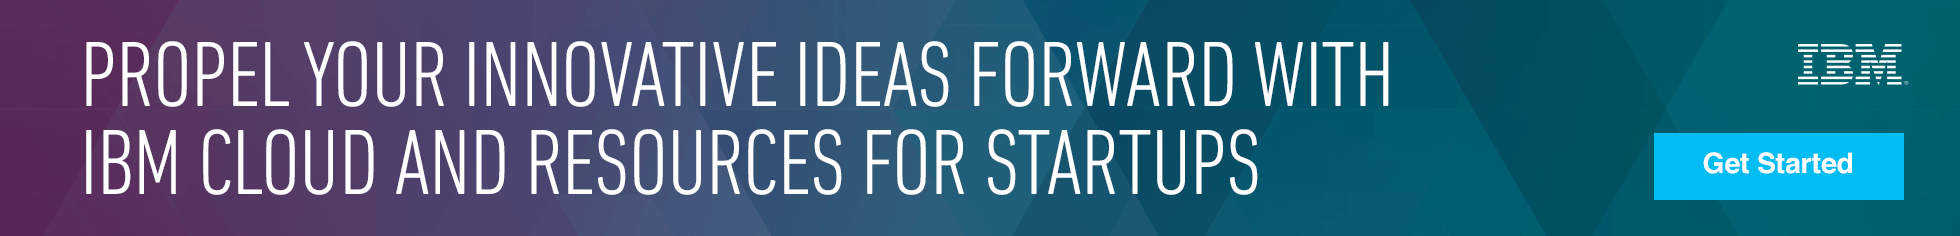 Propel your innovative ideas forward with IBM Cloud and resources for startups